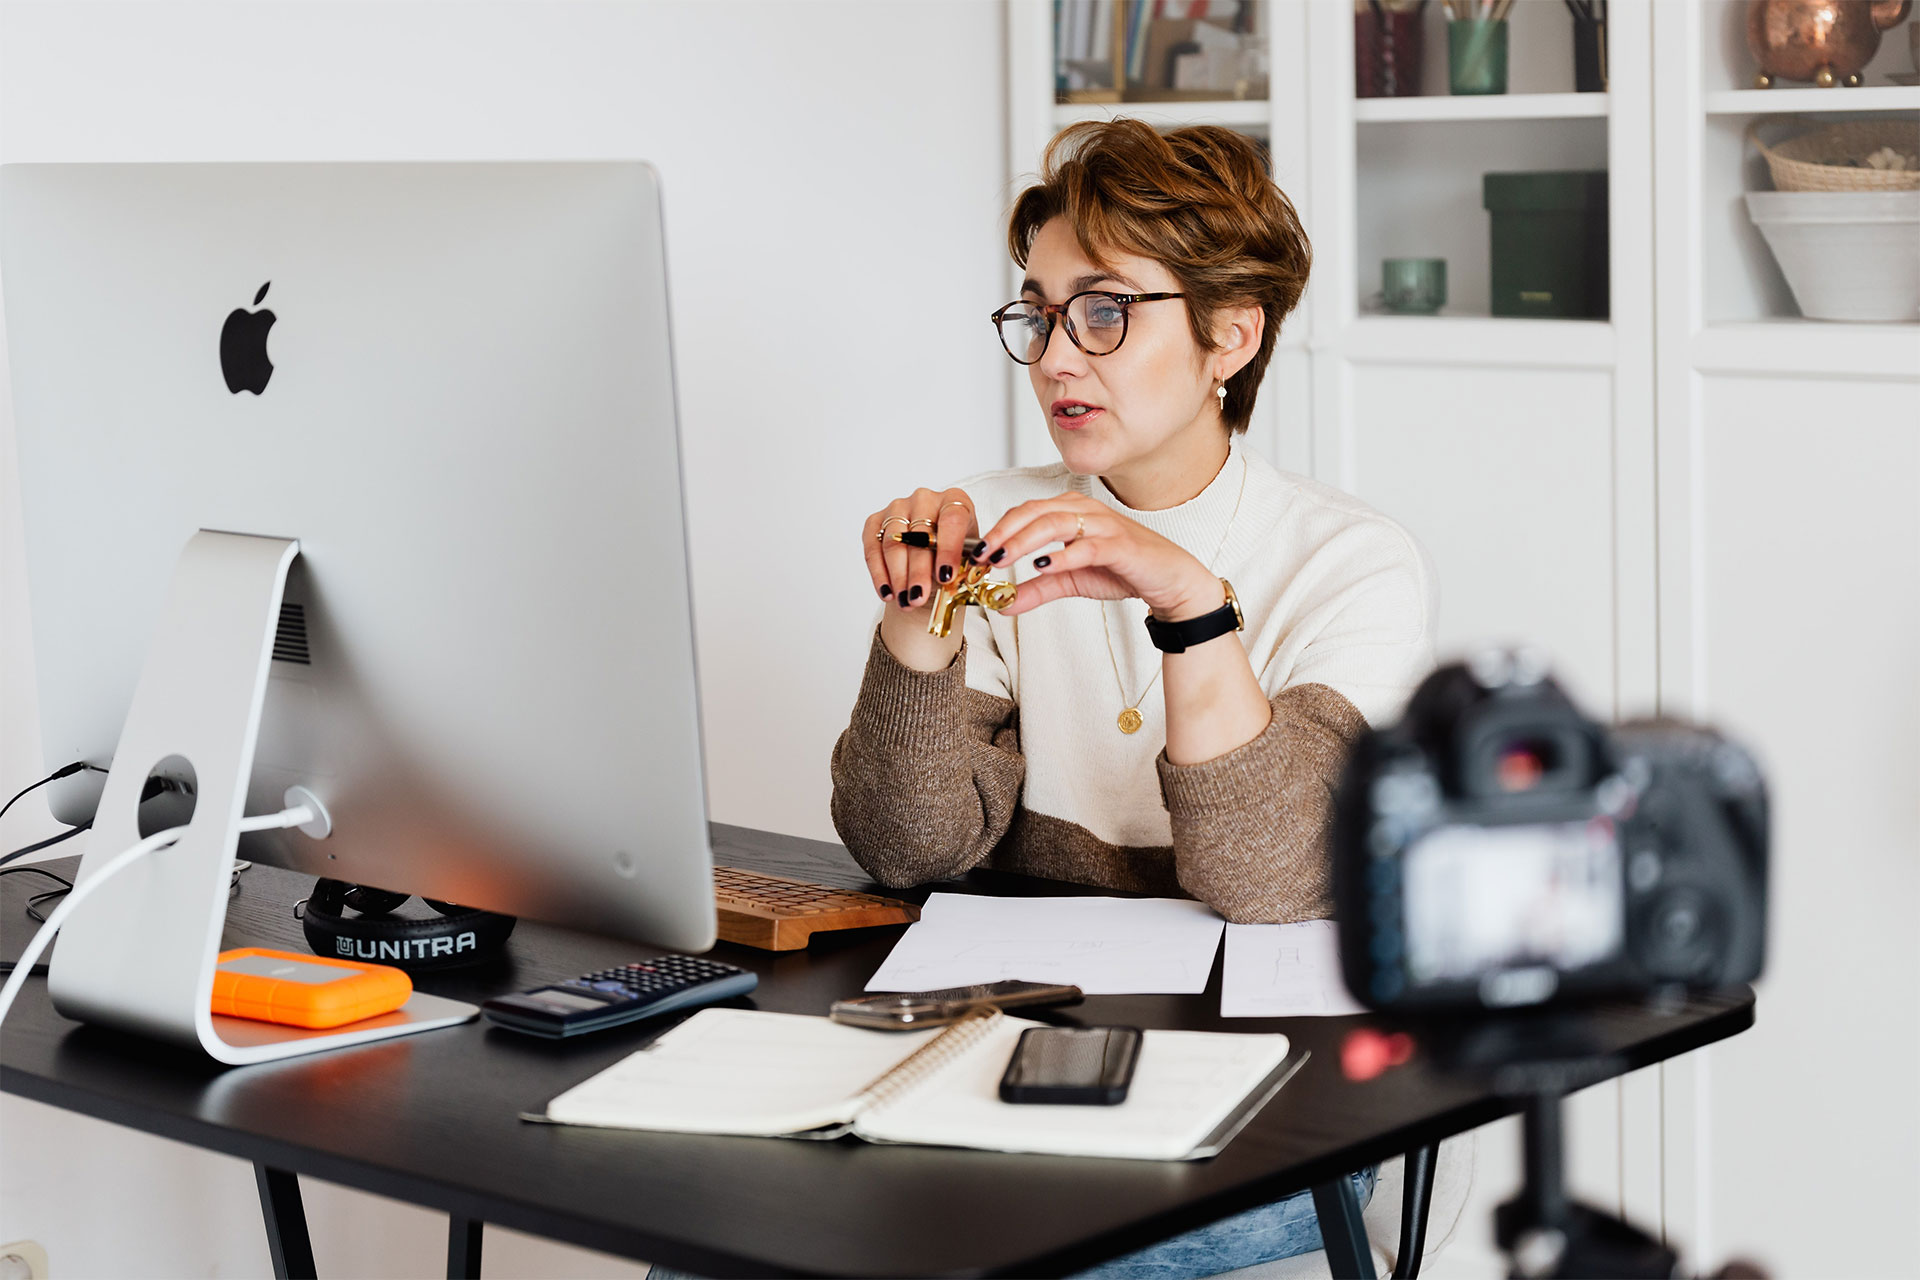 A person on a video conference call